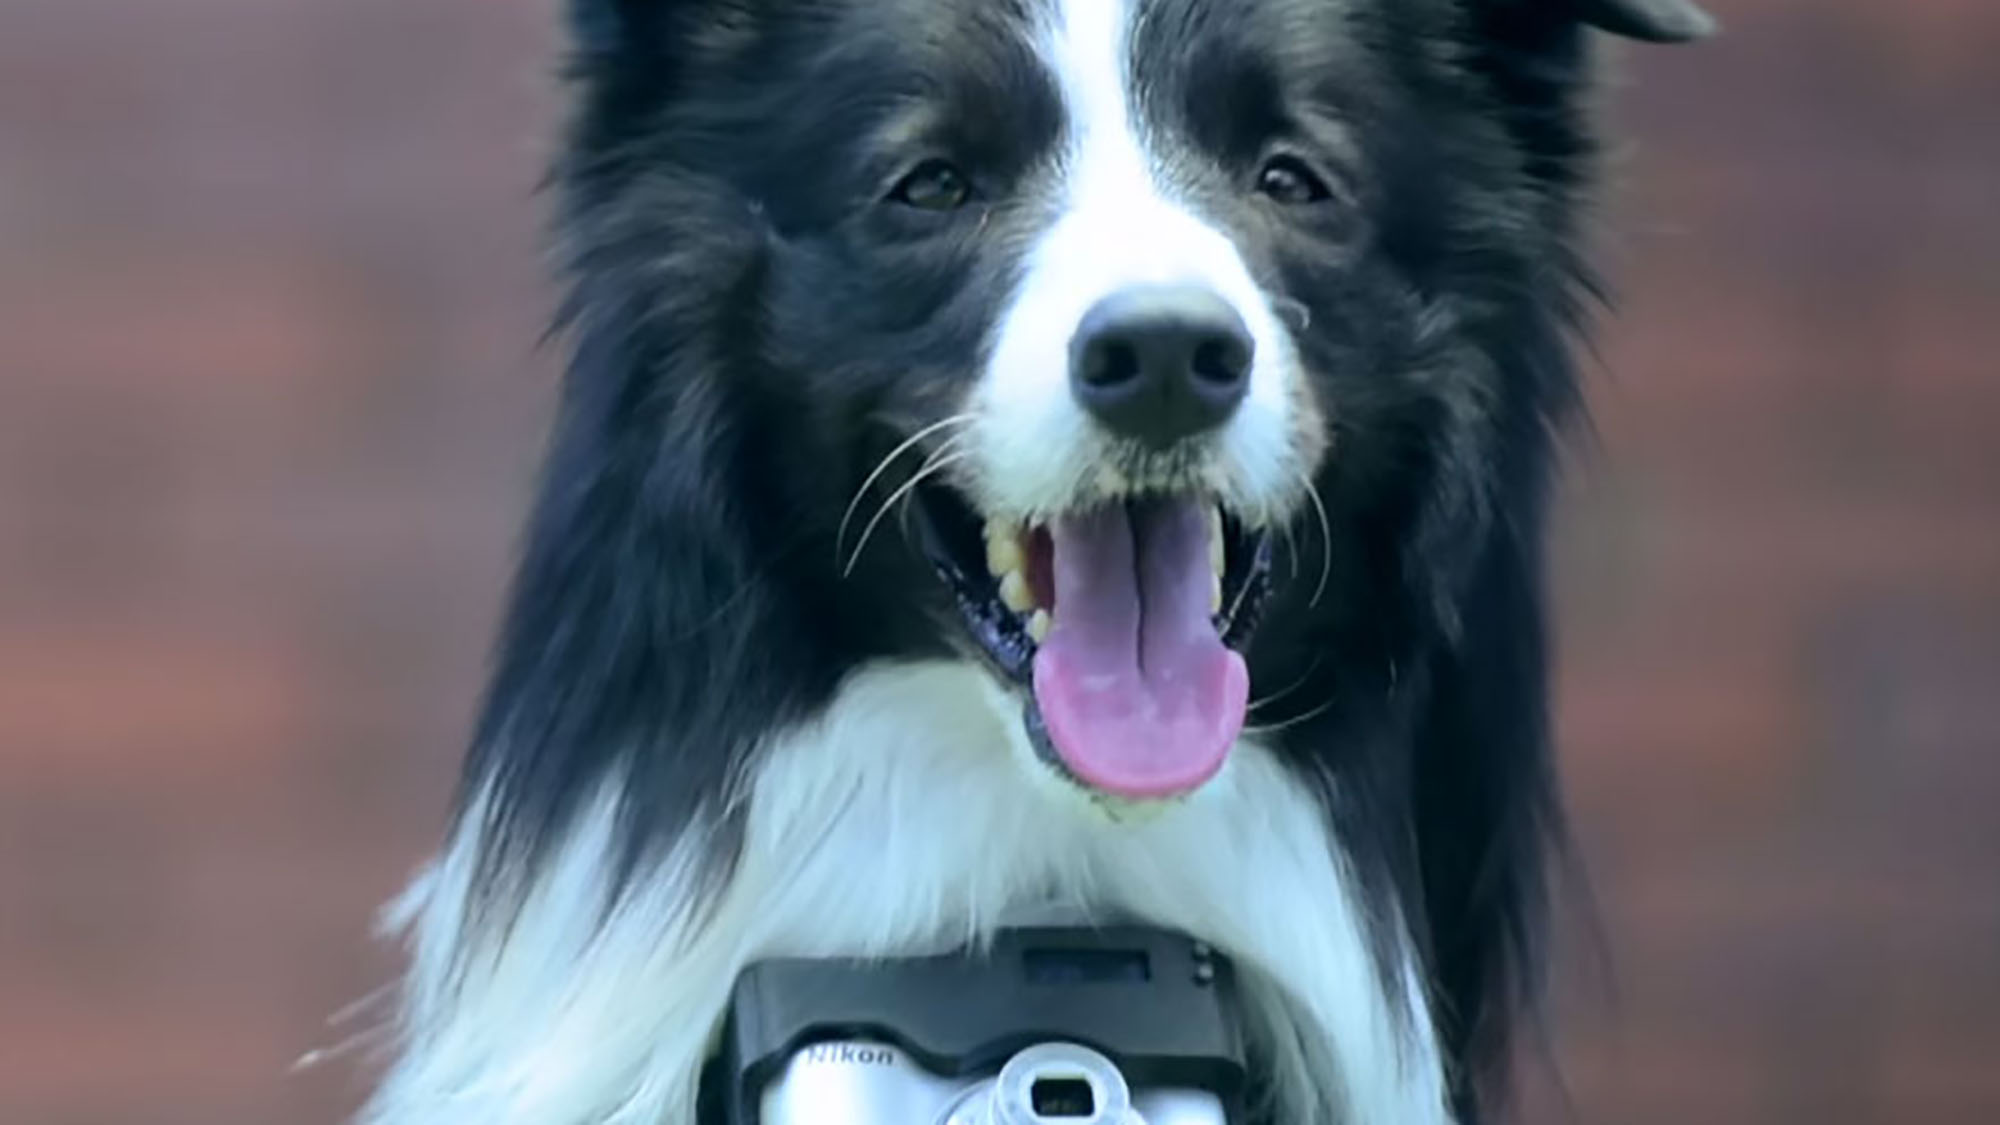 Dogs can now take photos thanks to Nikon's new contraption